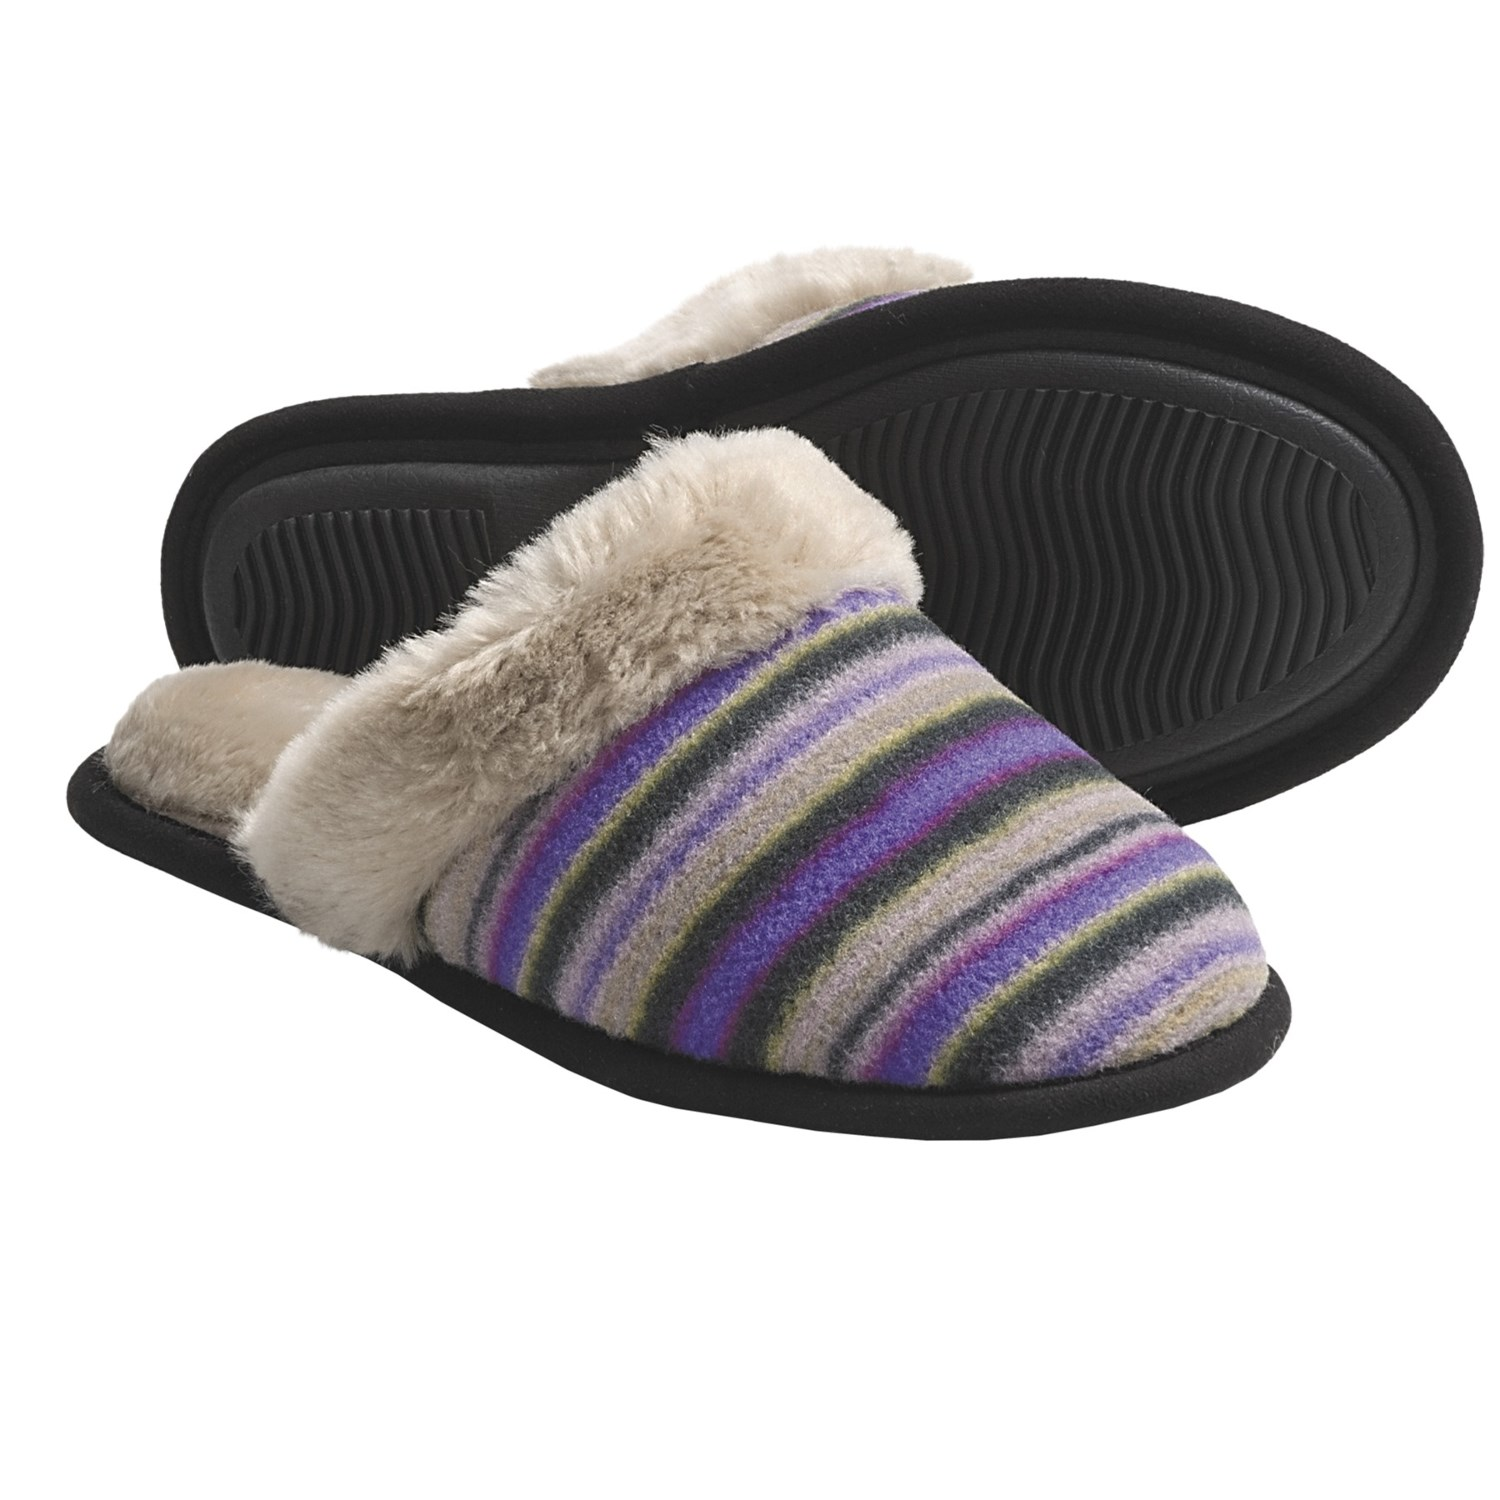 Fleece Slippers Womens 28 Images Clarks Whipstitch Clog Slippers For Save 59 Womens Bedroom